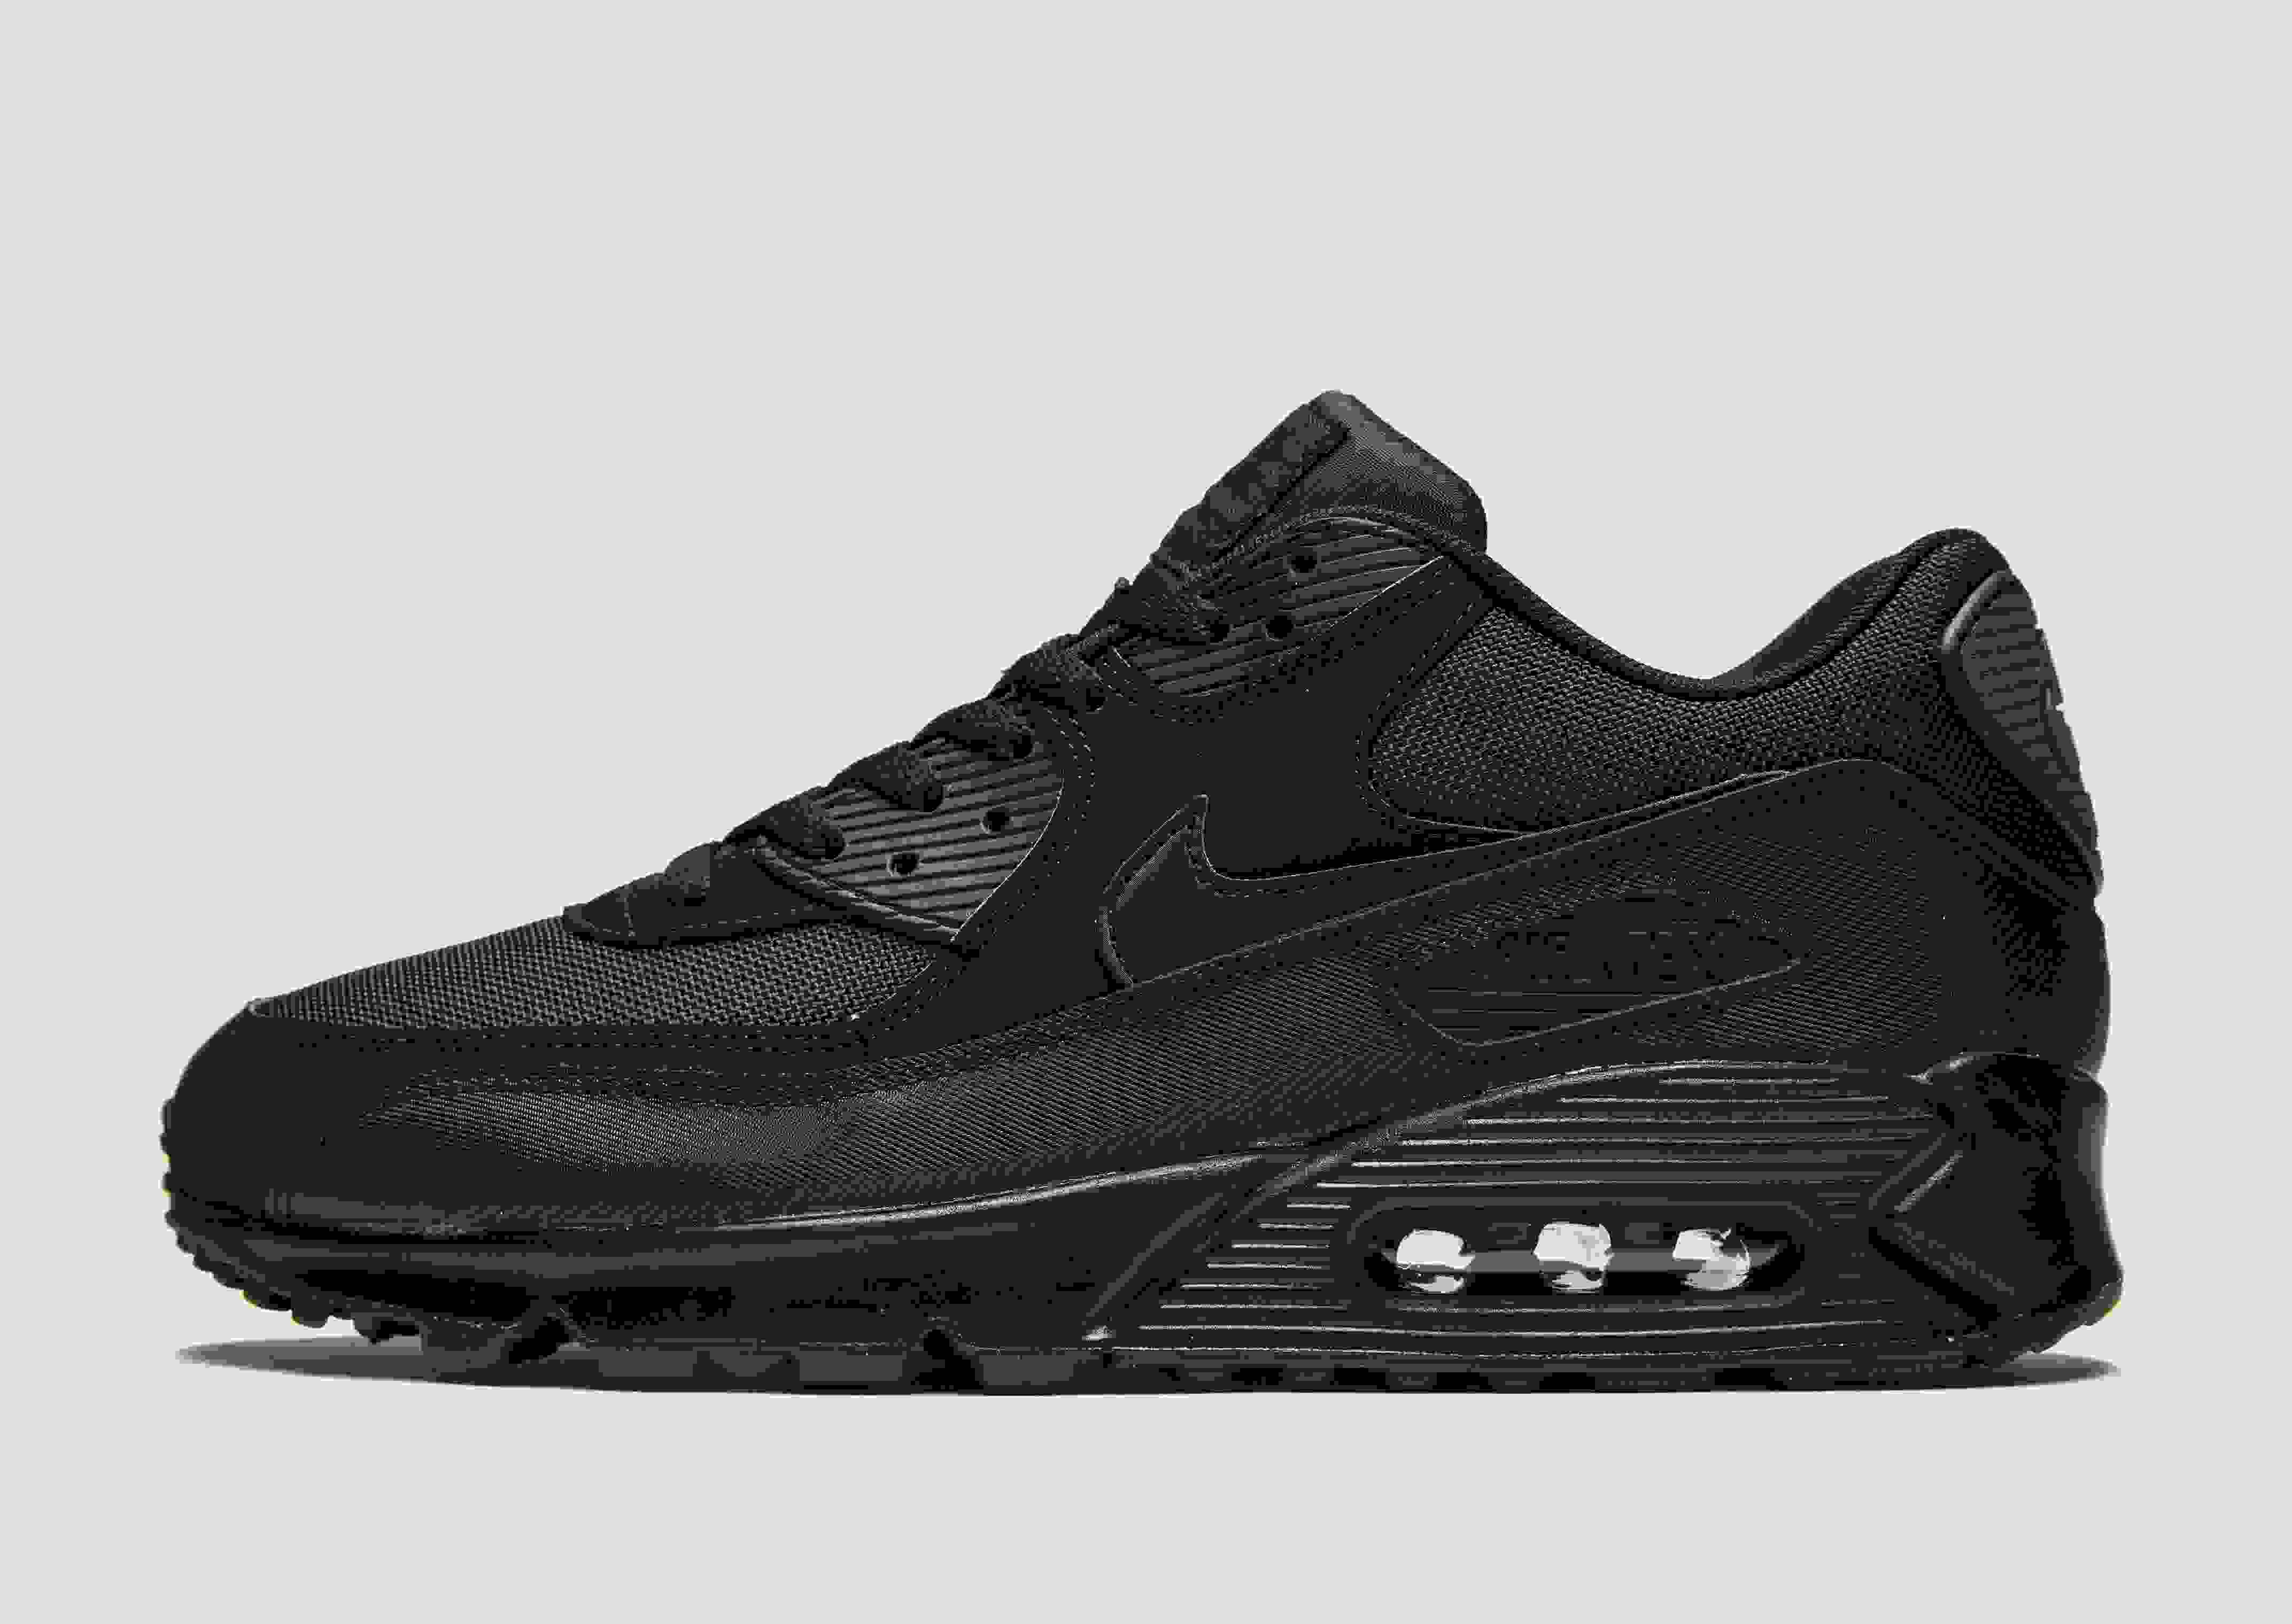 nike shoes air max black and white. Nike Air Max 90 Shoes Black And White C